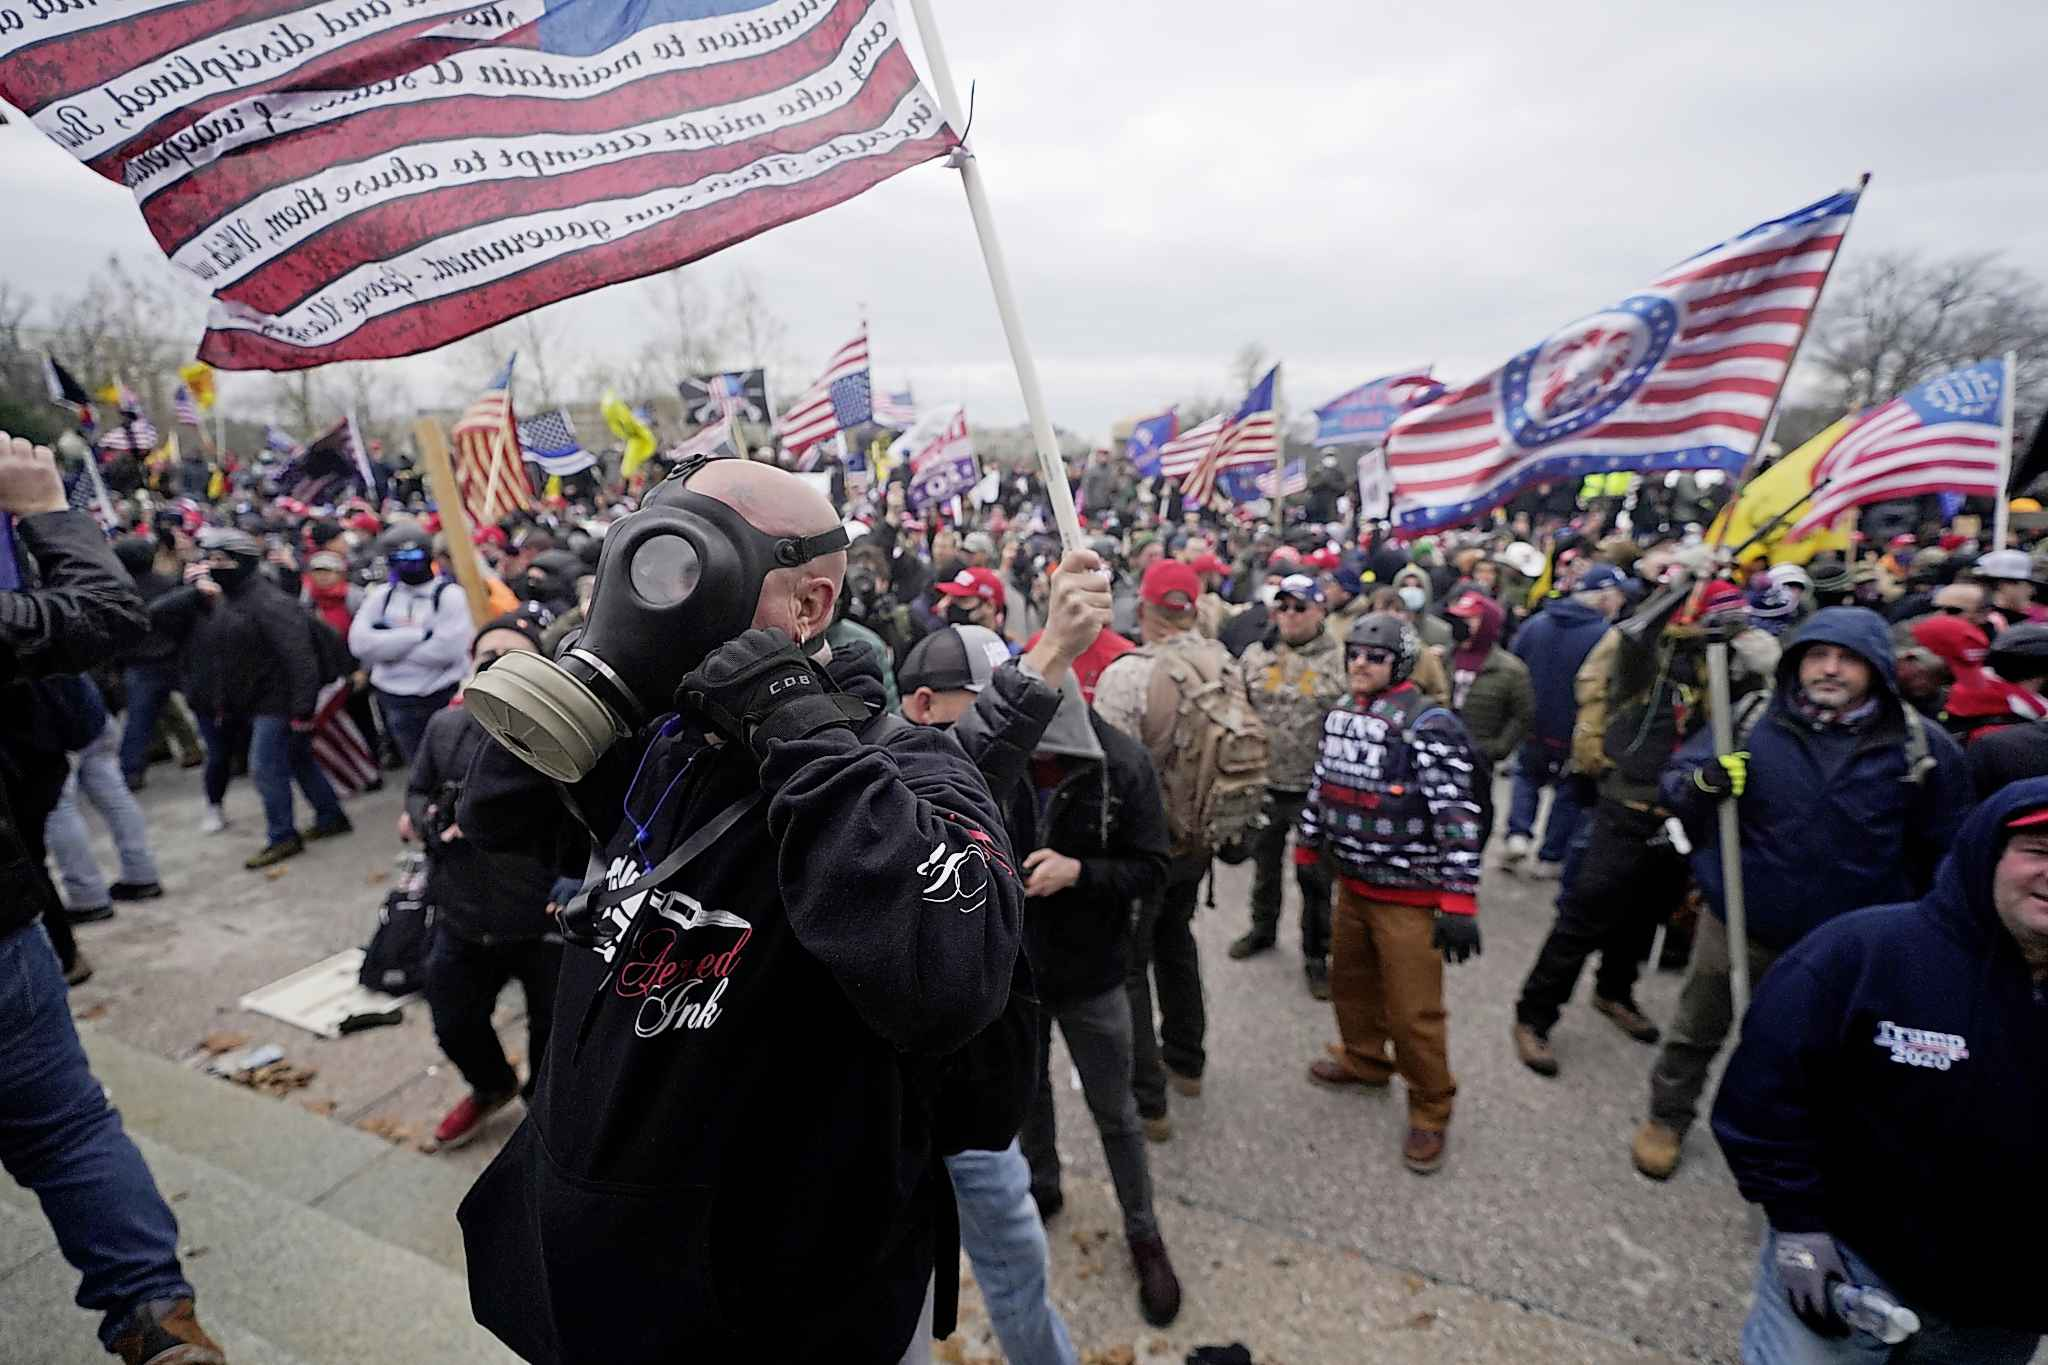 Trump supporters gather outside the Capitol, Wednesday, Jan. 6, 2021, in Washington. As Congress prepares to affirm President-elect Joe Biden's victory, thousands of people have gathered to show their support for President Donald Trump and his claims of election fraud. (AP Photo/Julio Cortez)